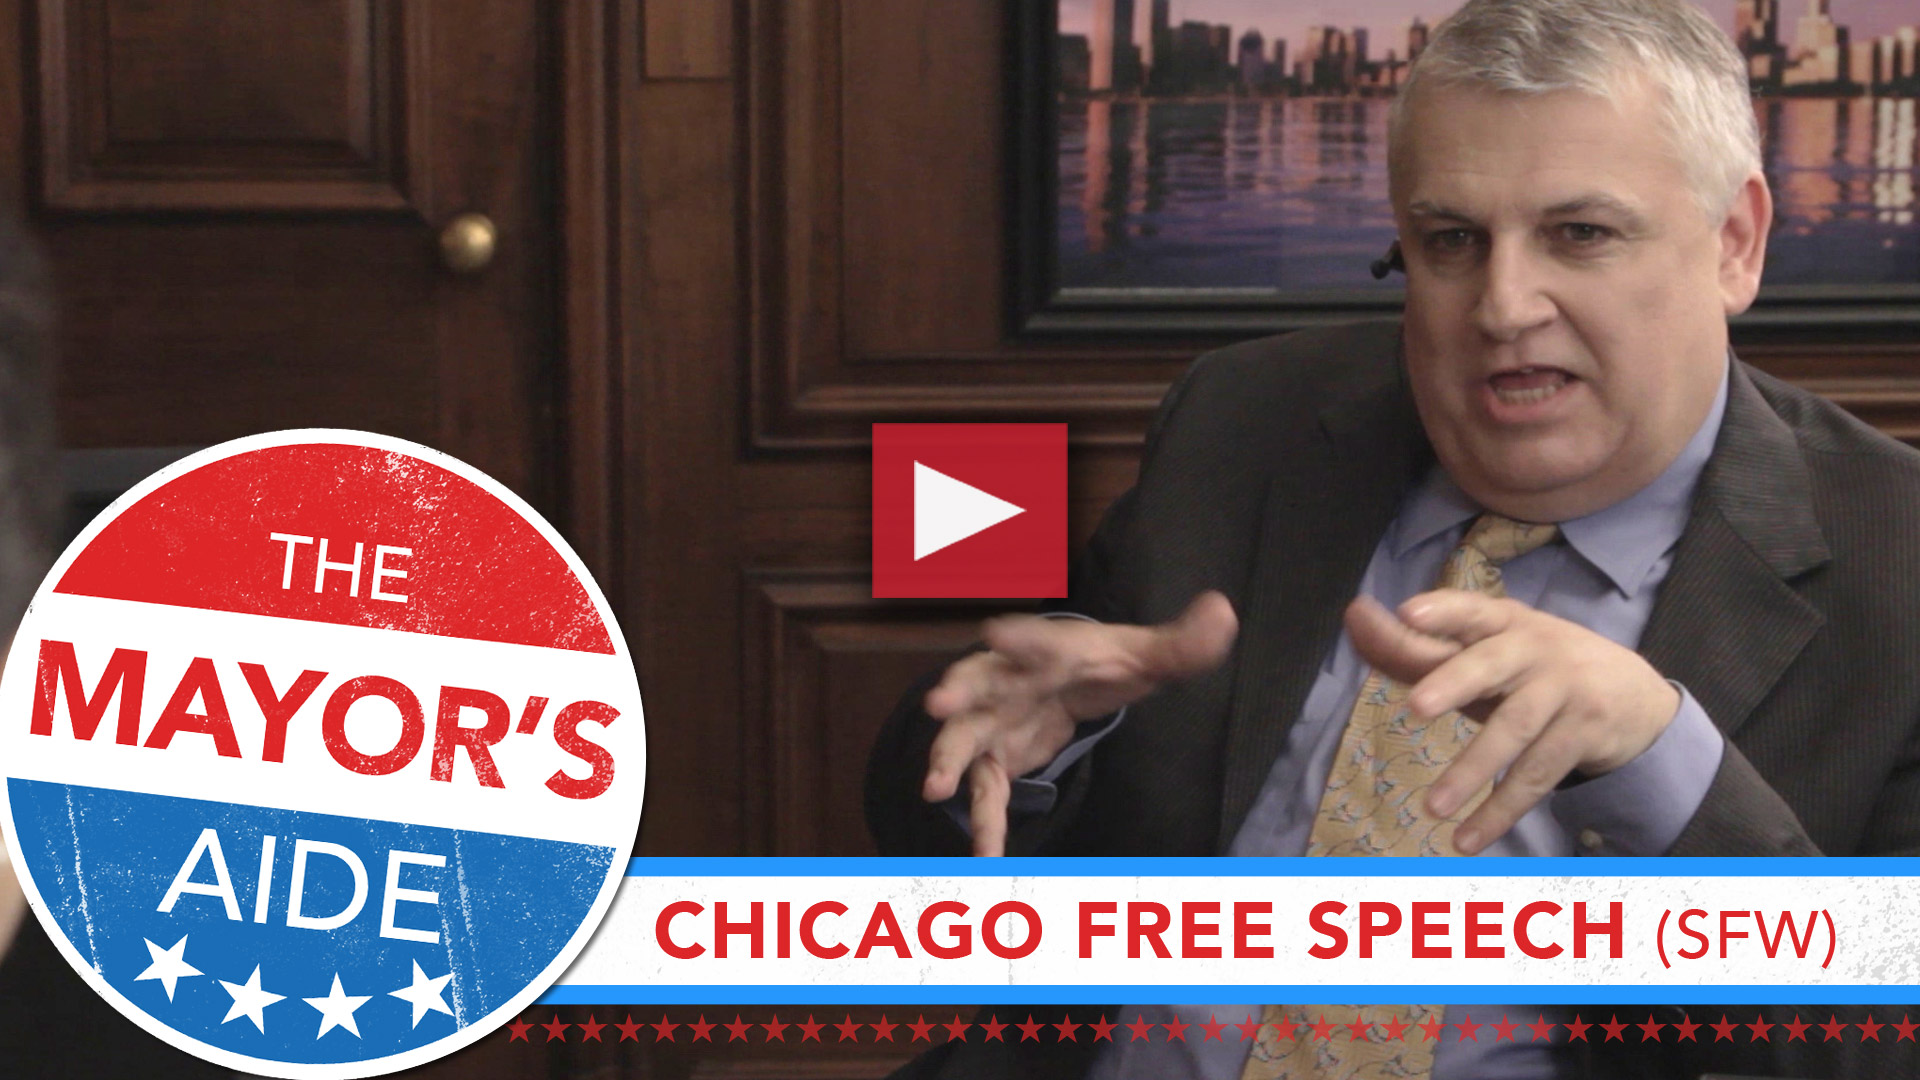 The Mayor's Aide – Chicago Free Speech (Safe for Work)